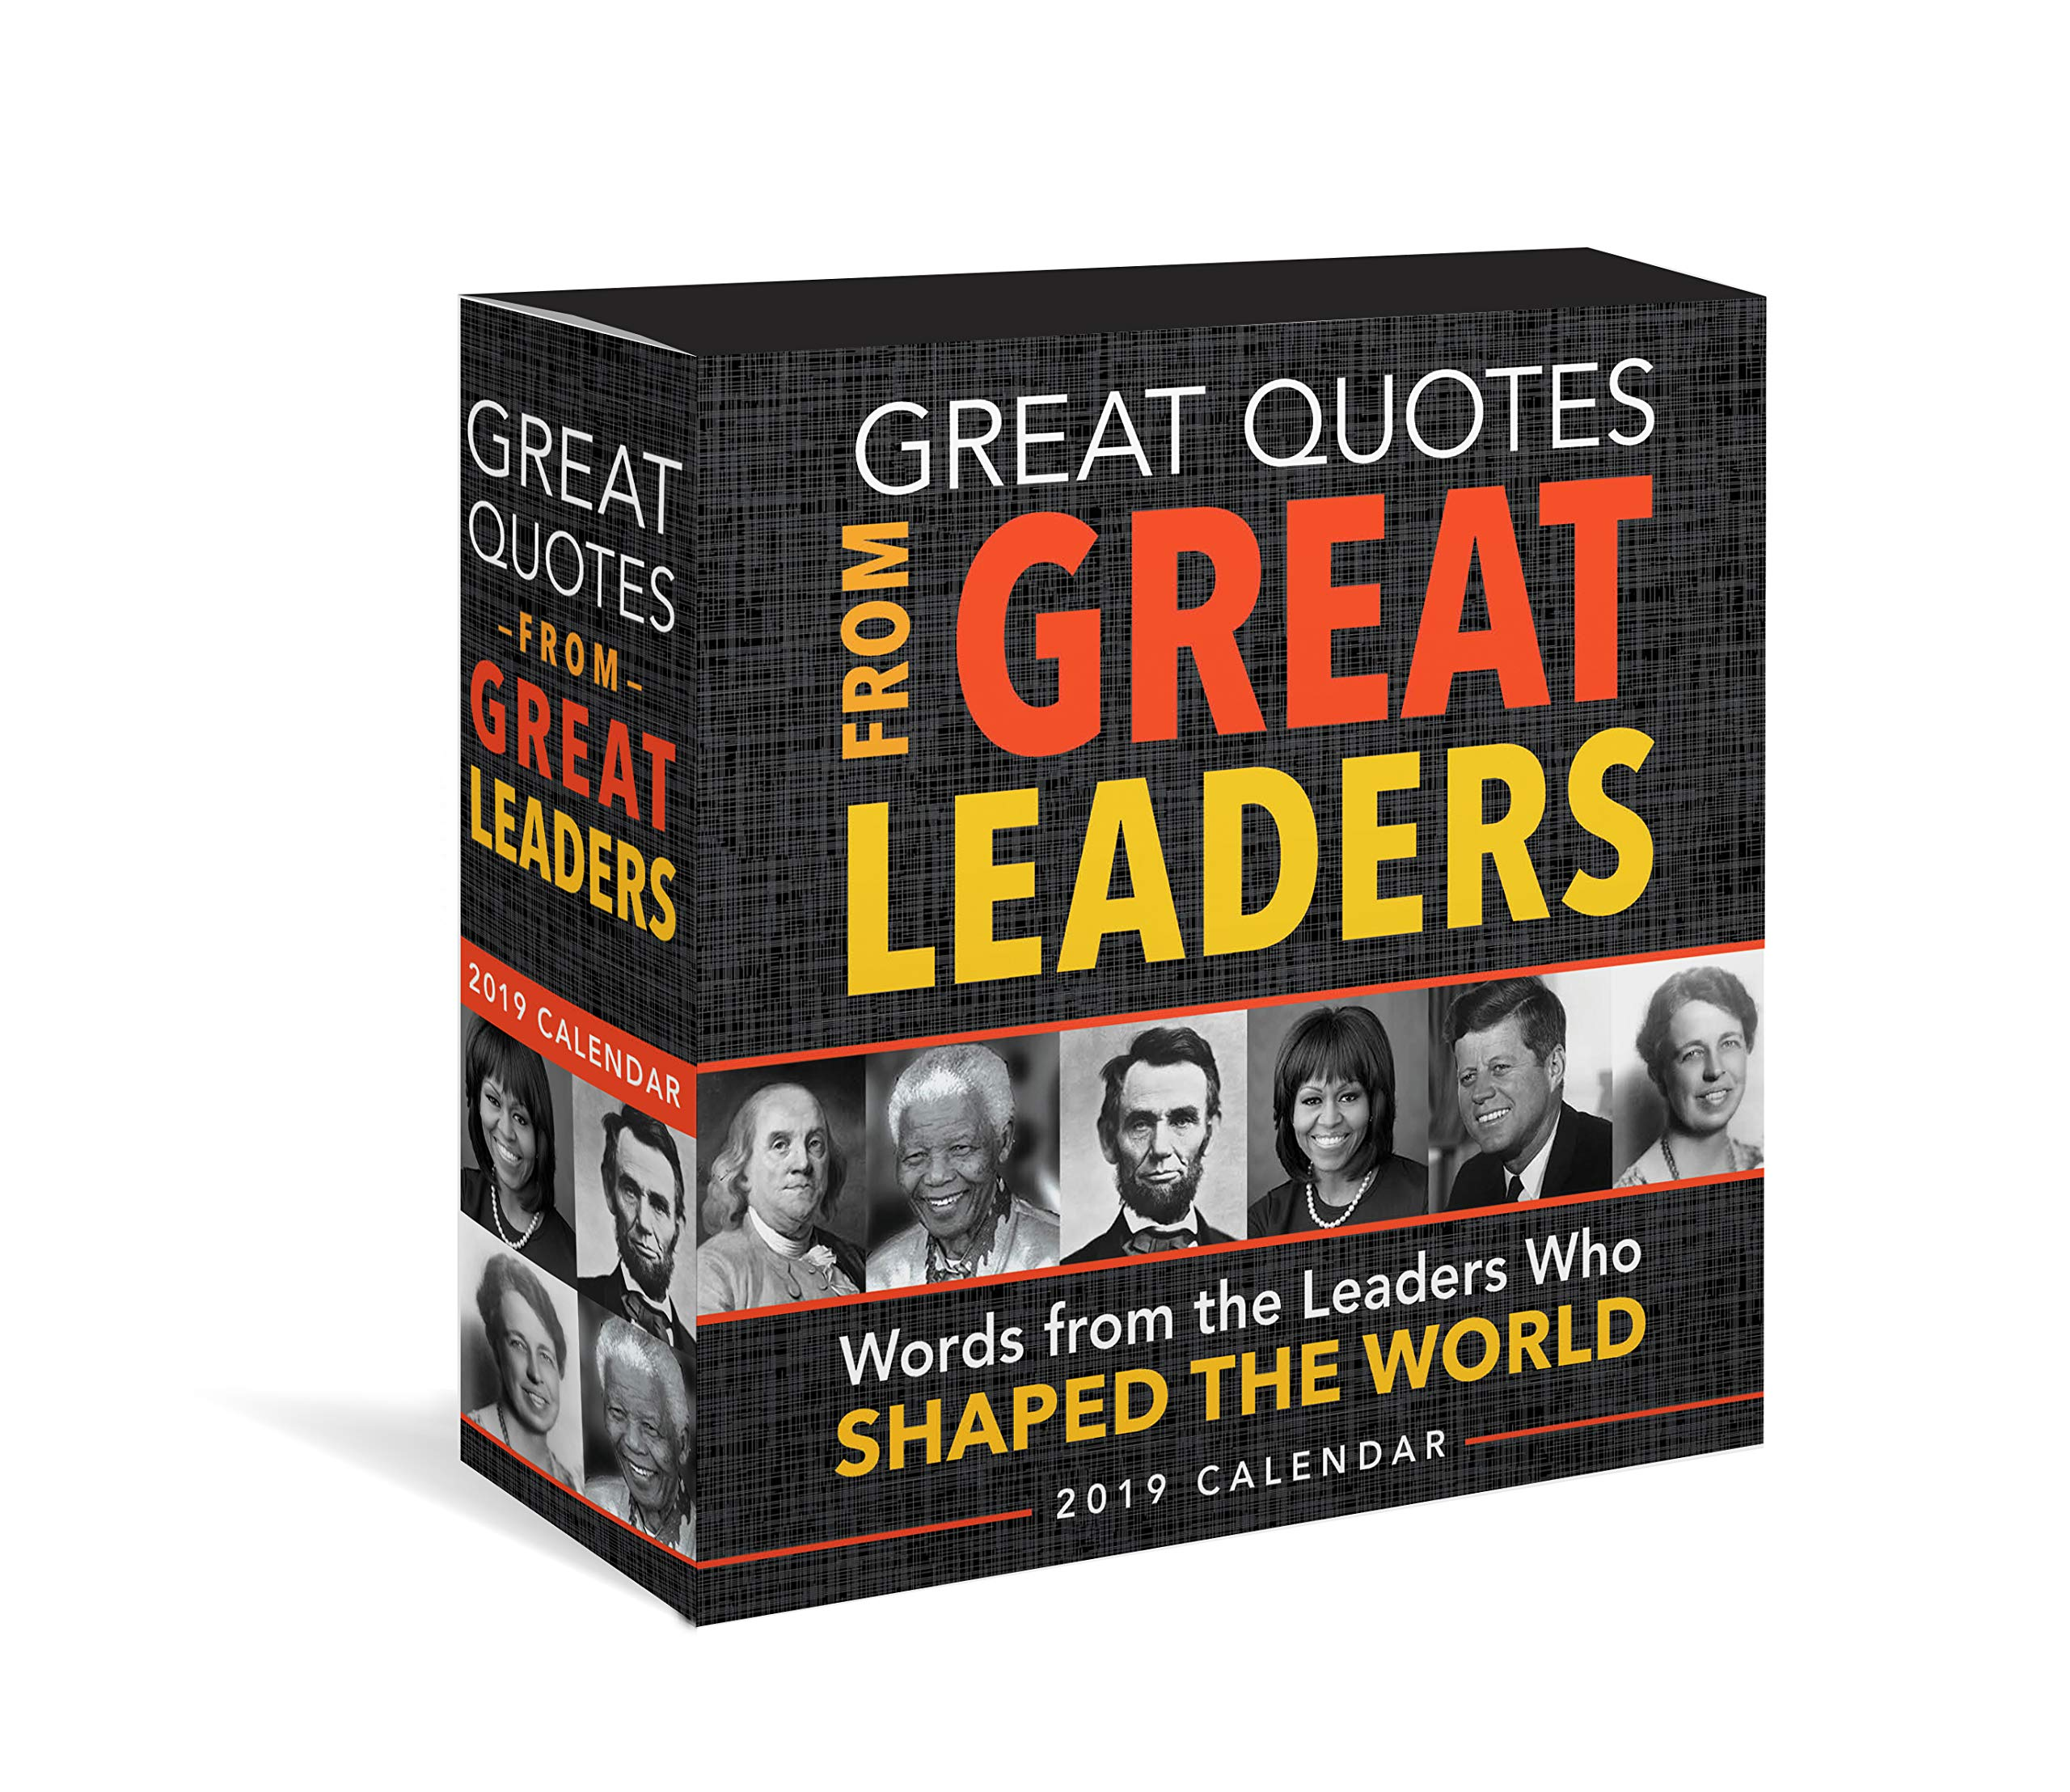 2019 Great Quotes from Great Leaders Boxed Calendar Calendar – Day to Day Calendar, July 1, 2018 Sourcebooks 1492663646 General Calendars